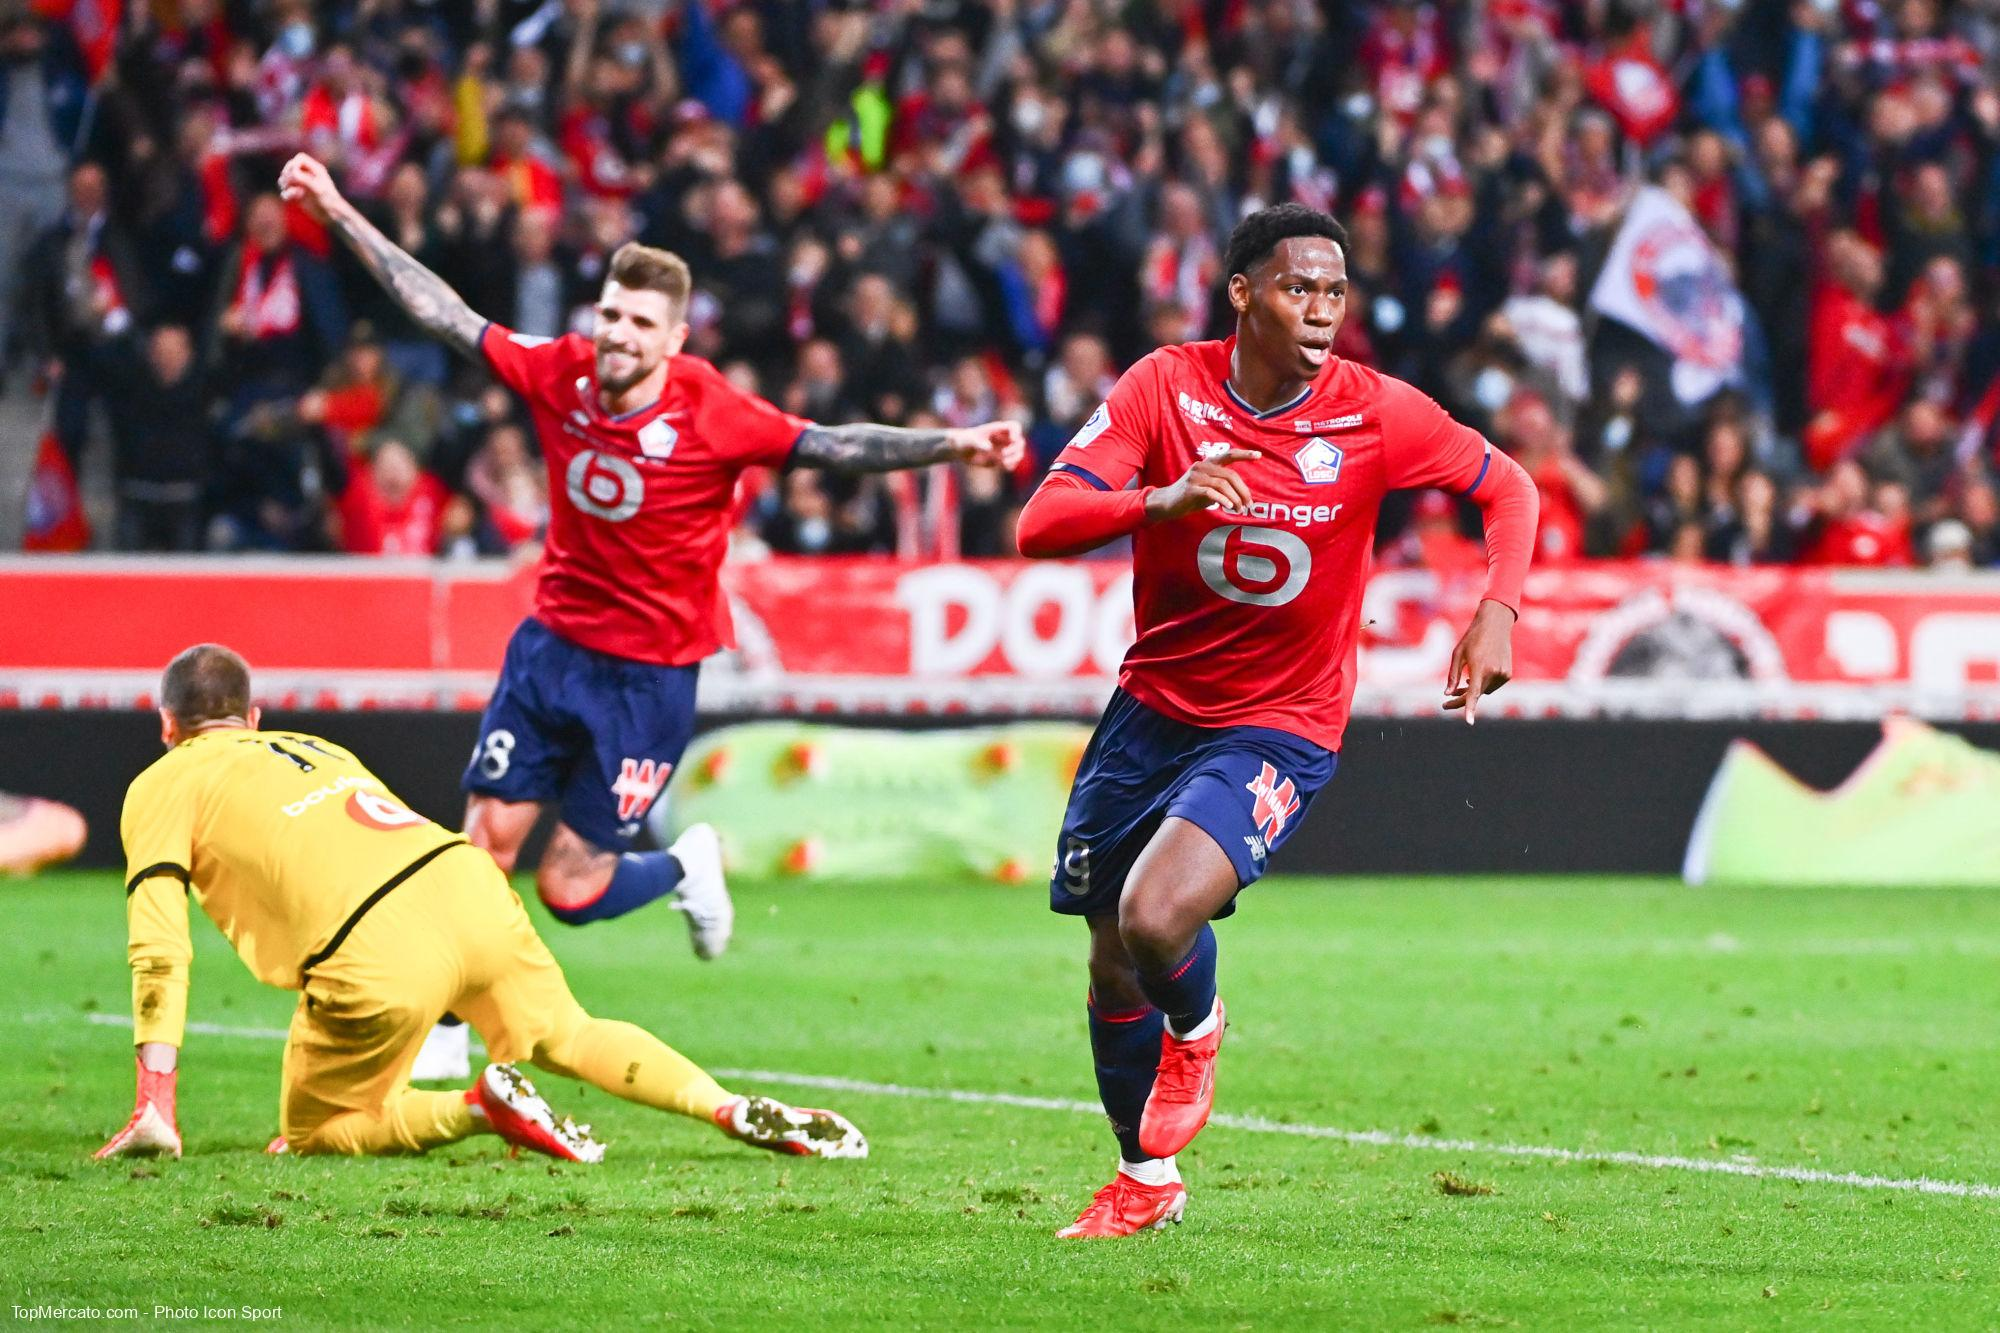 Lille: possible strains, channel and time of the match